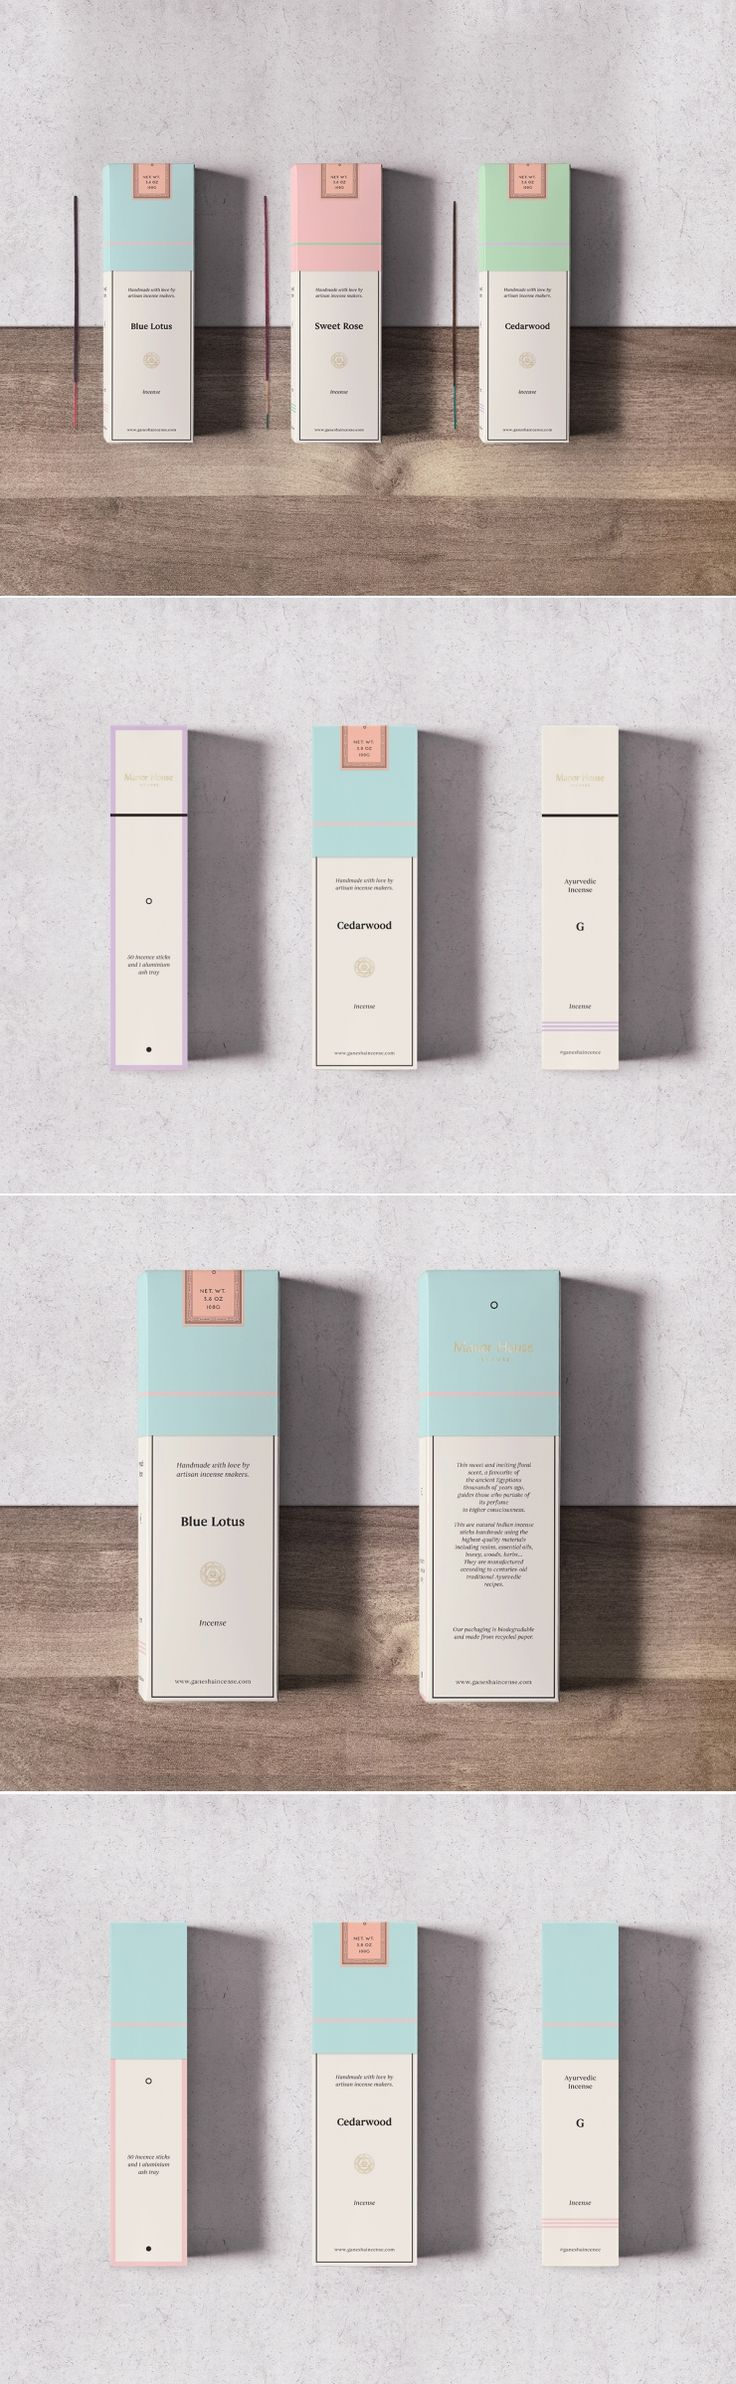 Manor House Incense ~ packaging design by Tom Jueris